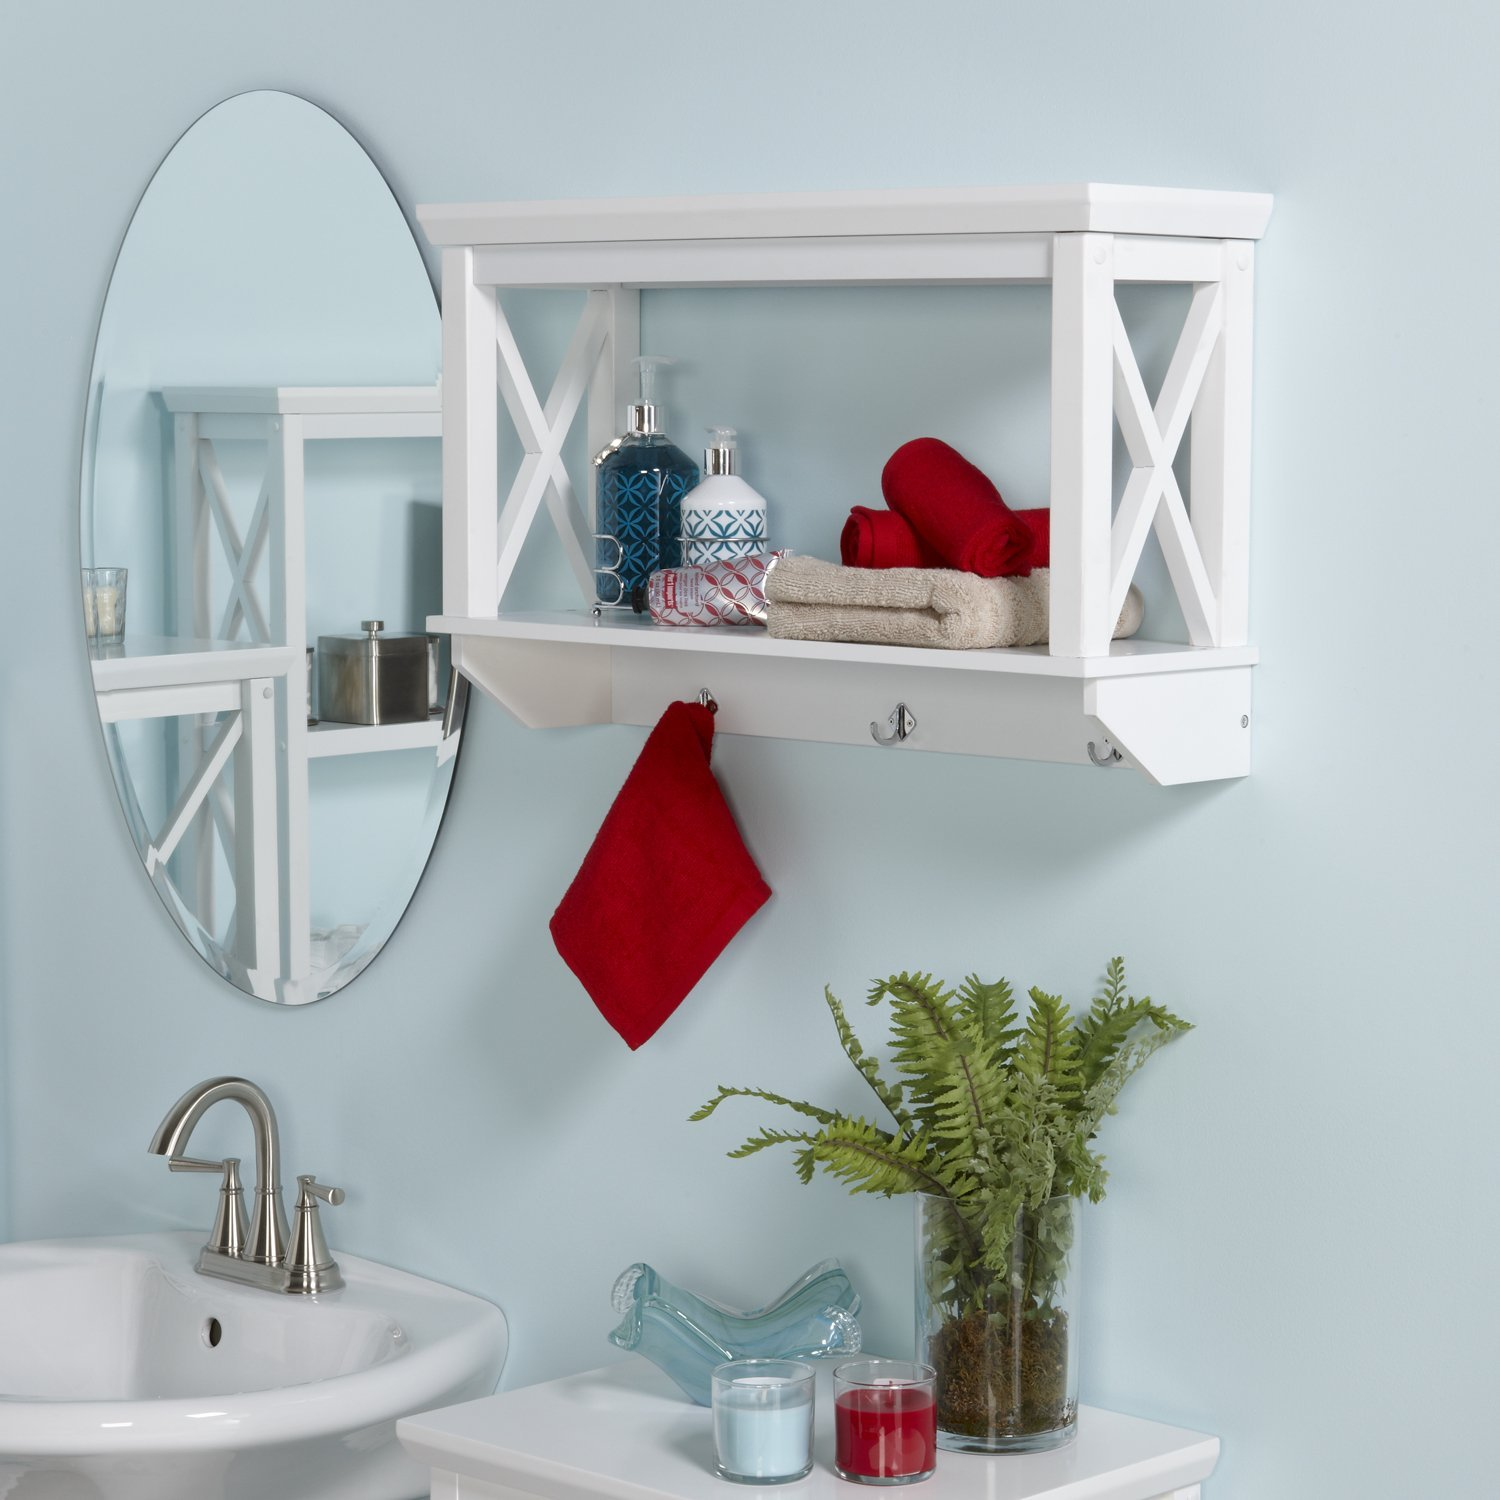 20 Best Wooden Bathroom Shelves Reviews. Cabinet Storage Solutions. Sea Themed Bathrooms. Vanity Desk With Mirror. Hinkle Homes. Cowhide Fabric. Interior Decorating Tips. Orbit Chandelier. Greendale Home Fashions